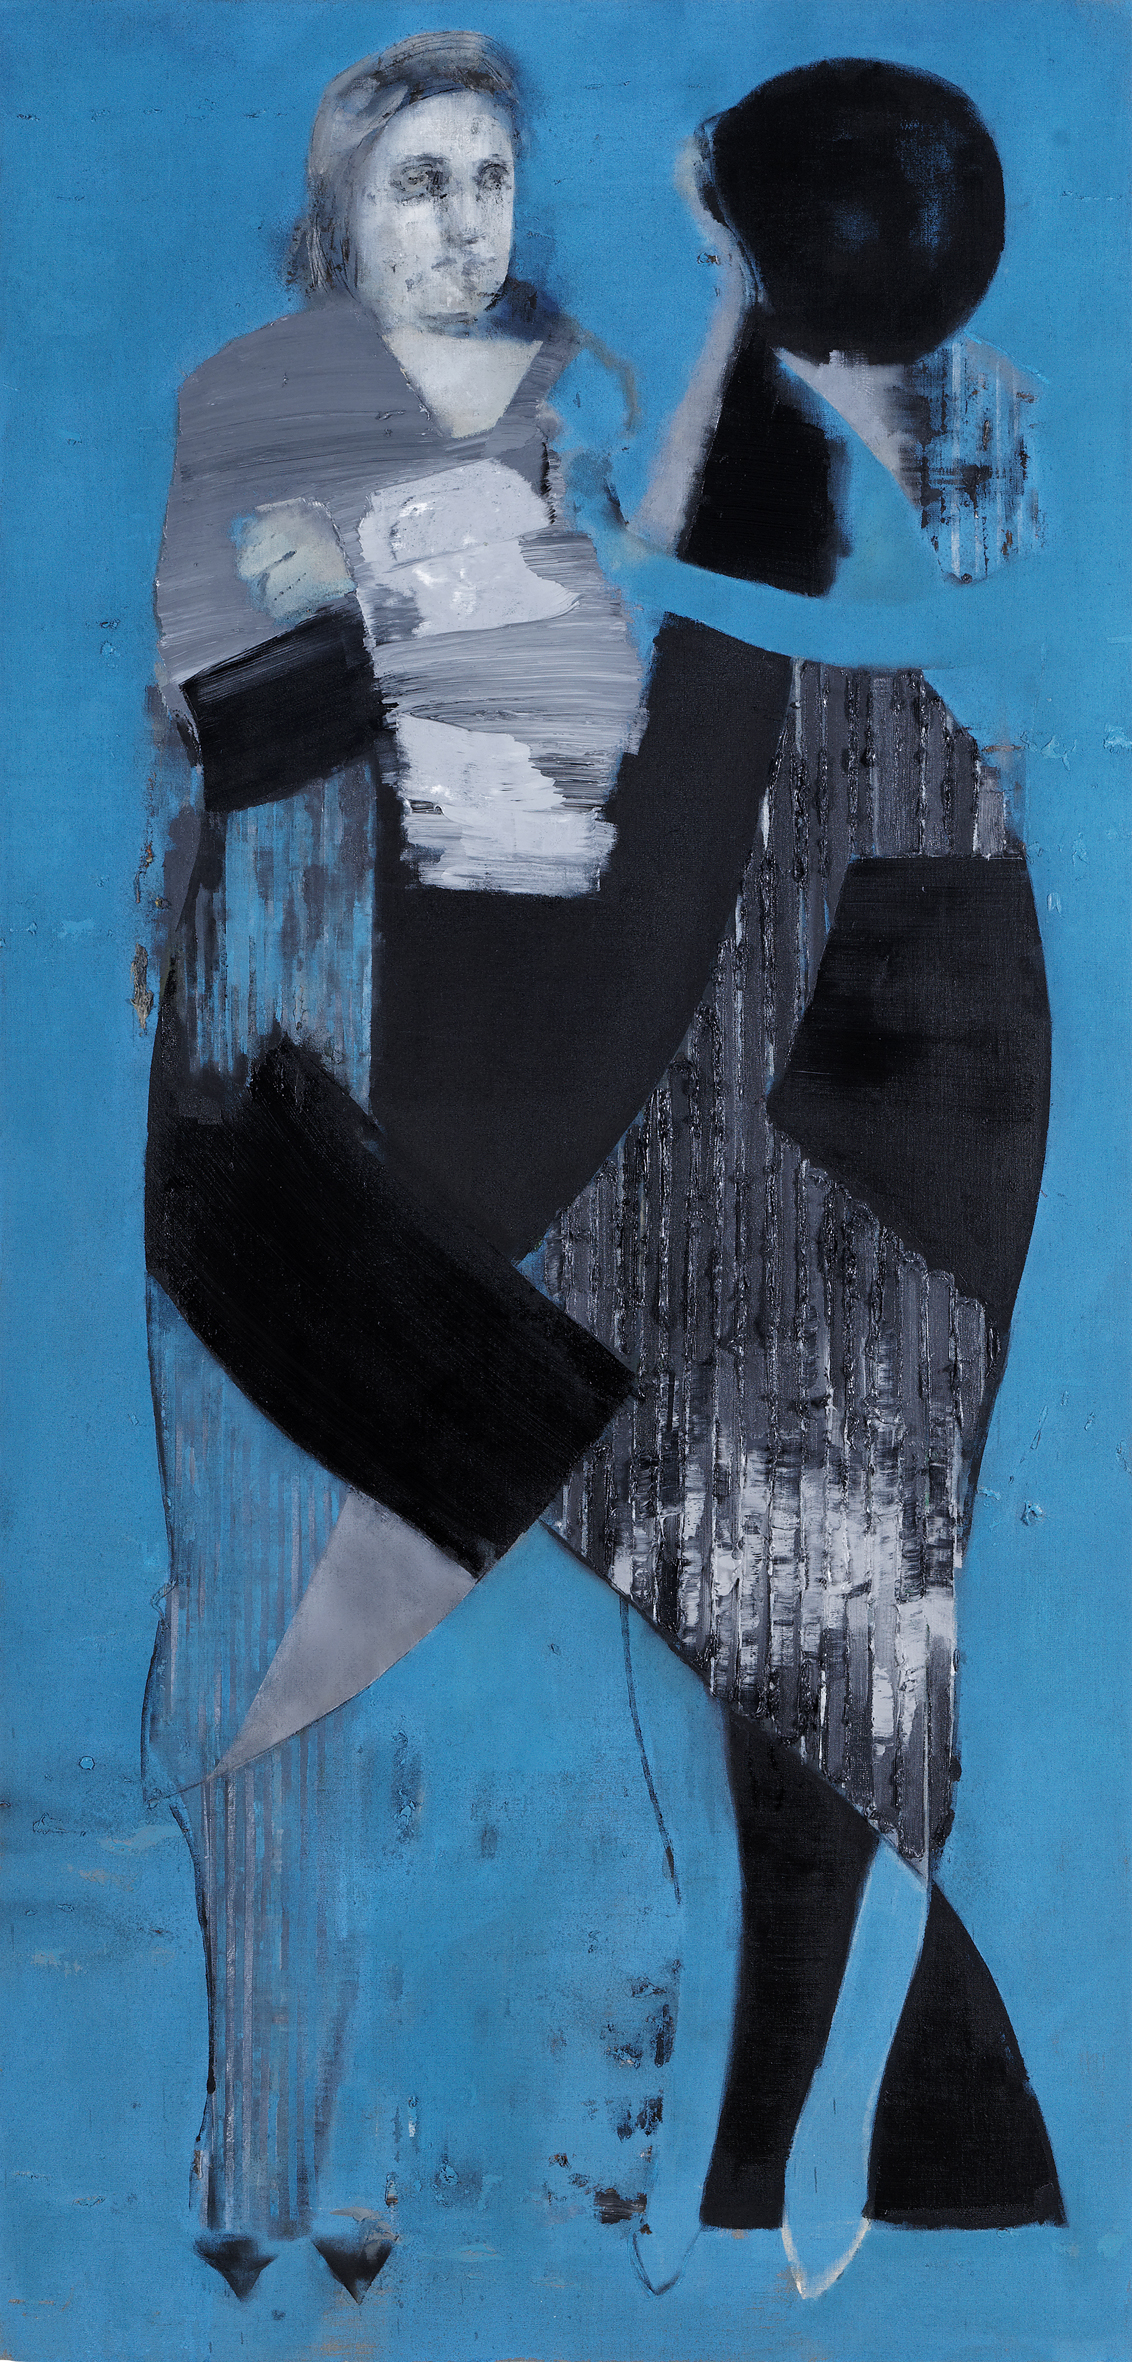 The Stickler (Blue), 2010-2011, Oil on linen over panel, 200 x 100 cm